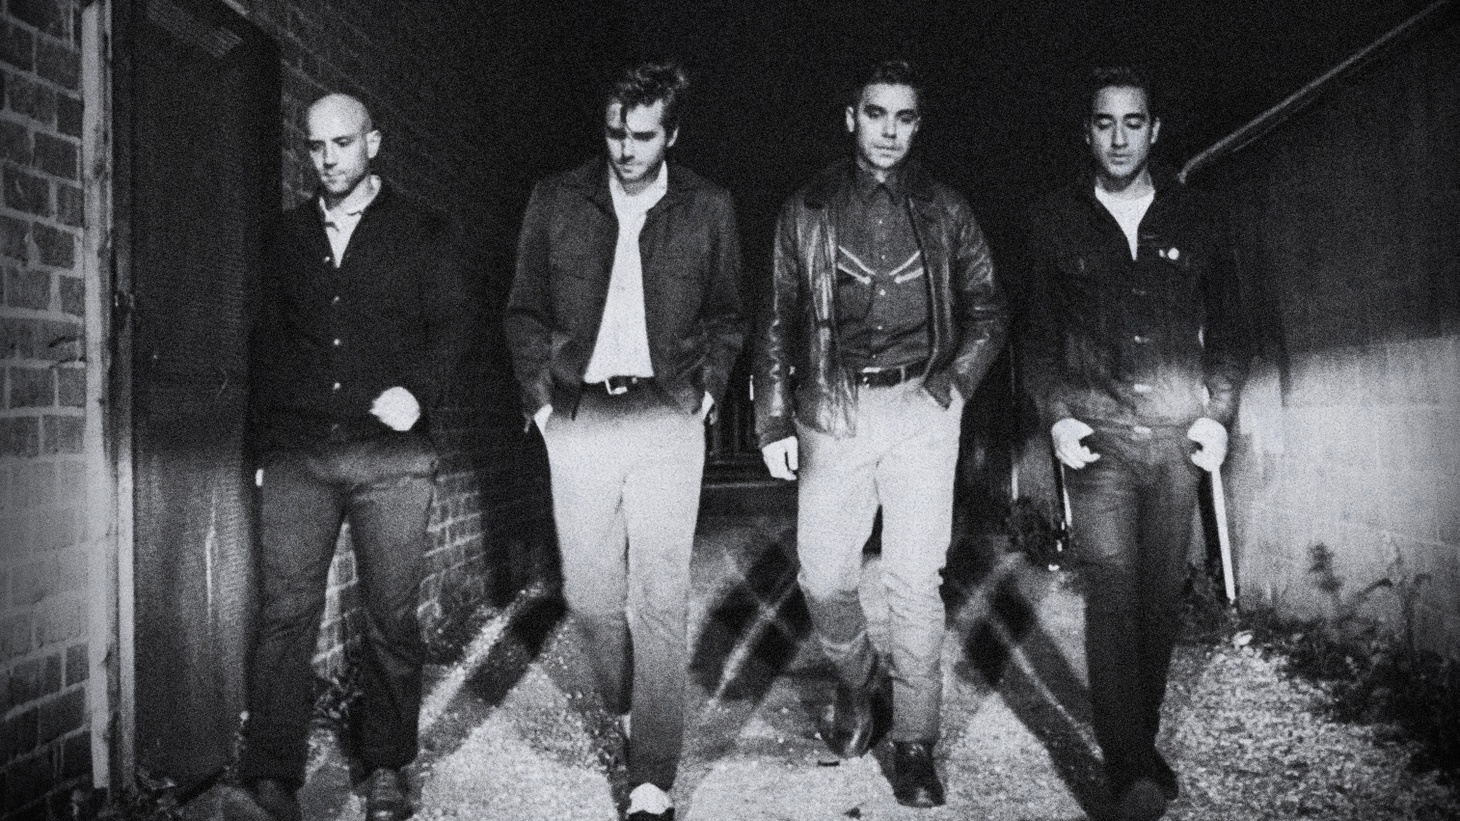 Frontman Ben Schneider wrote and produced Lord Huron's forthcoming album in their adopted home of Los Angeles.